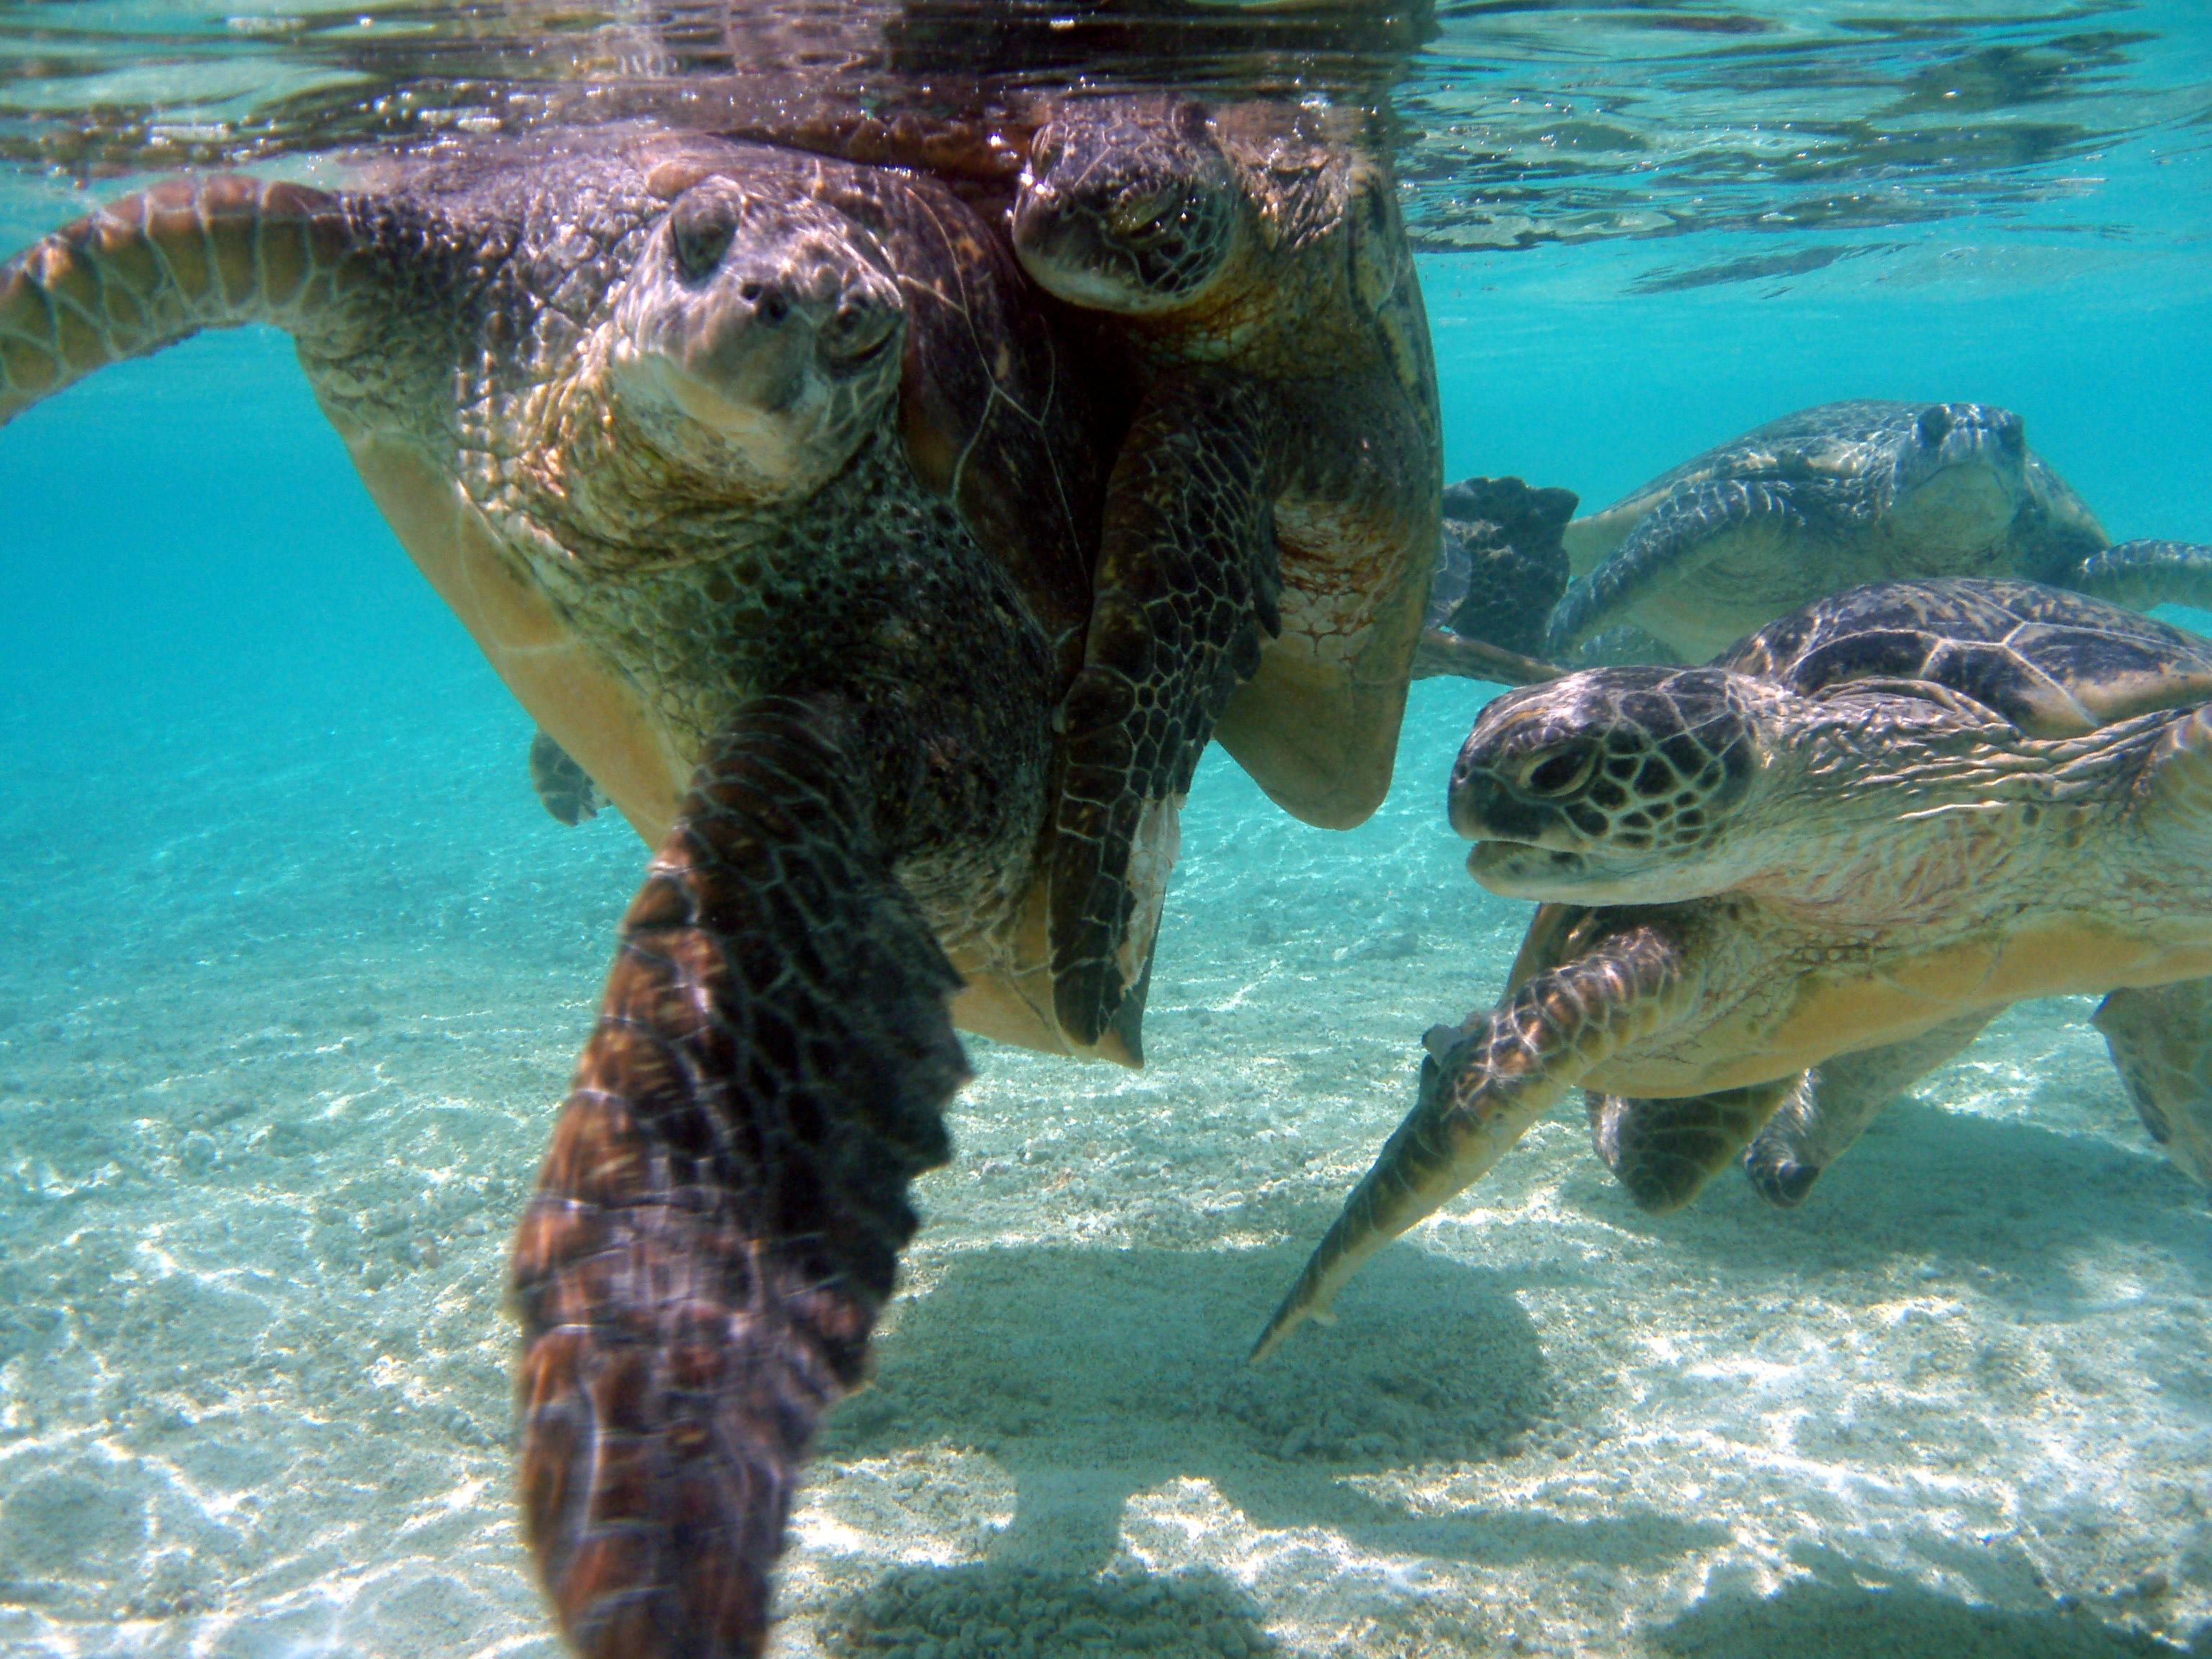 more efforts should be made to protect the endangered sea turtles More changes needed to protect enacted strong laws and regulations to protect sea turtles about loggerhead turtles and efforts to protect.